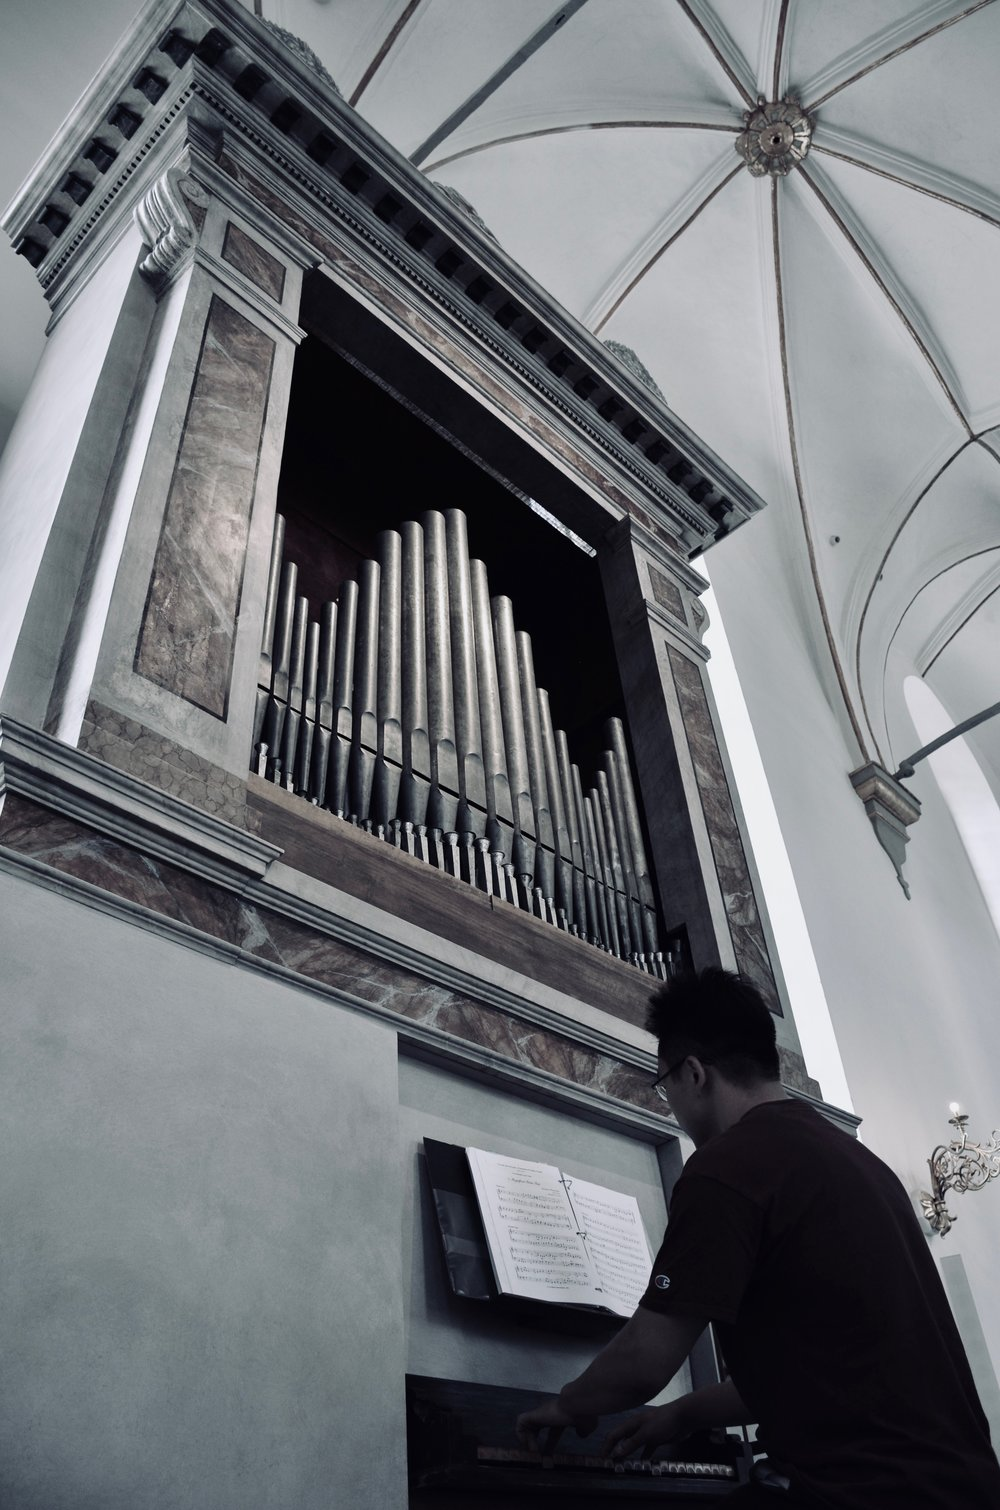 Adrian Cho plays the Italian baroque organ in Trinitatis Kirke, Copenhagen.